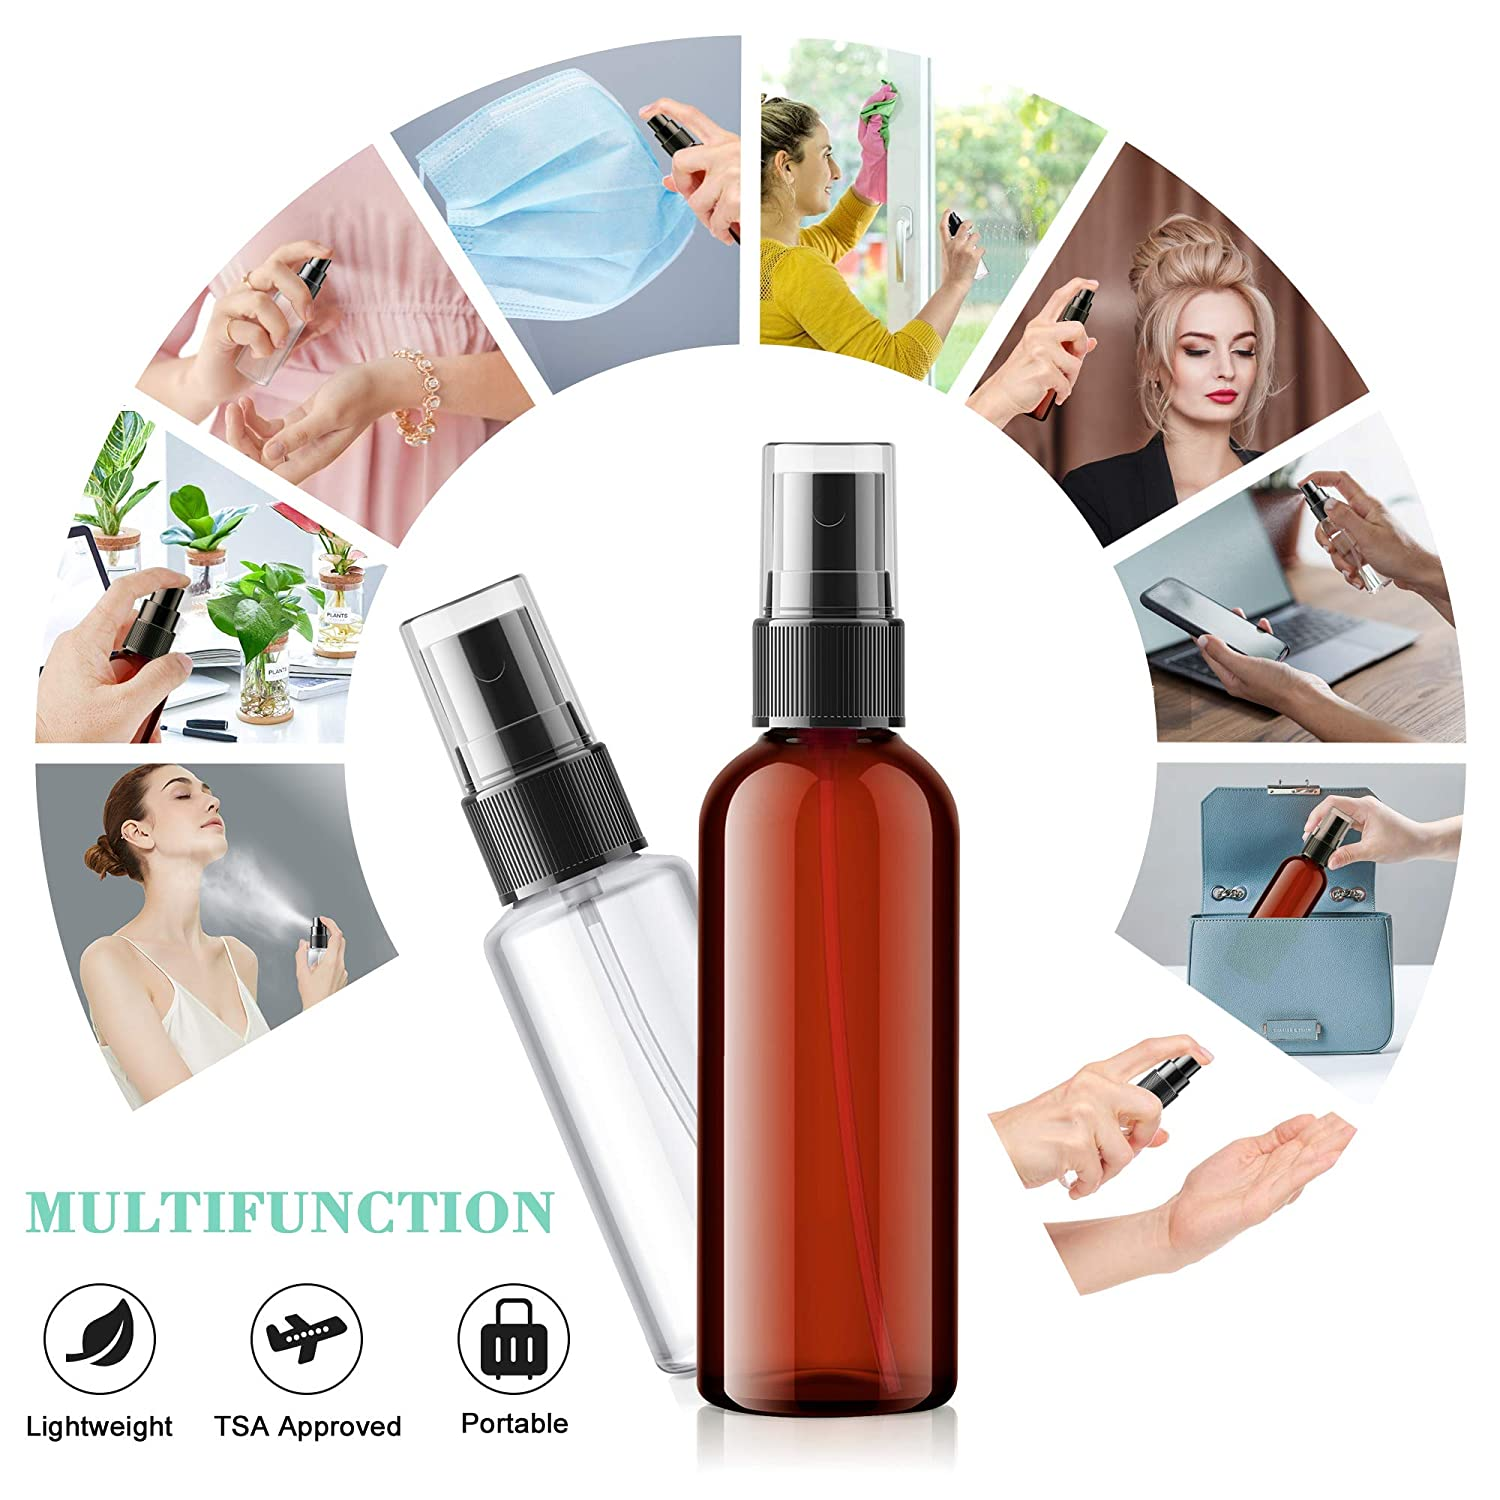 Spray Bottles, Jornarshar 8 Pcs Fine Mist Bottles, Empty Refillable Container for Hand Sanitizer, Essential Oils, Cleaning Products, or Aromatherapy - 3.4oz x2, 2oz x2, 1.7oz x2, 1oz x2 : Beauty